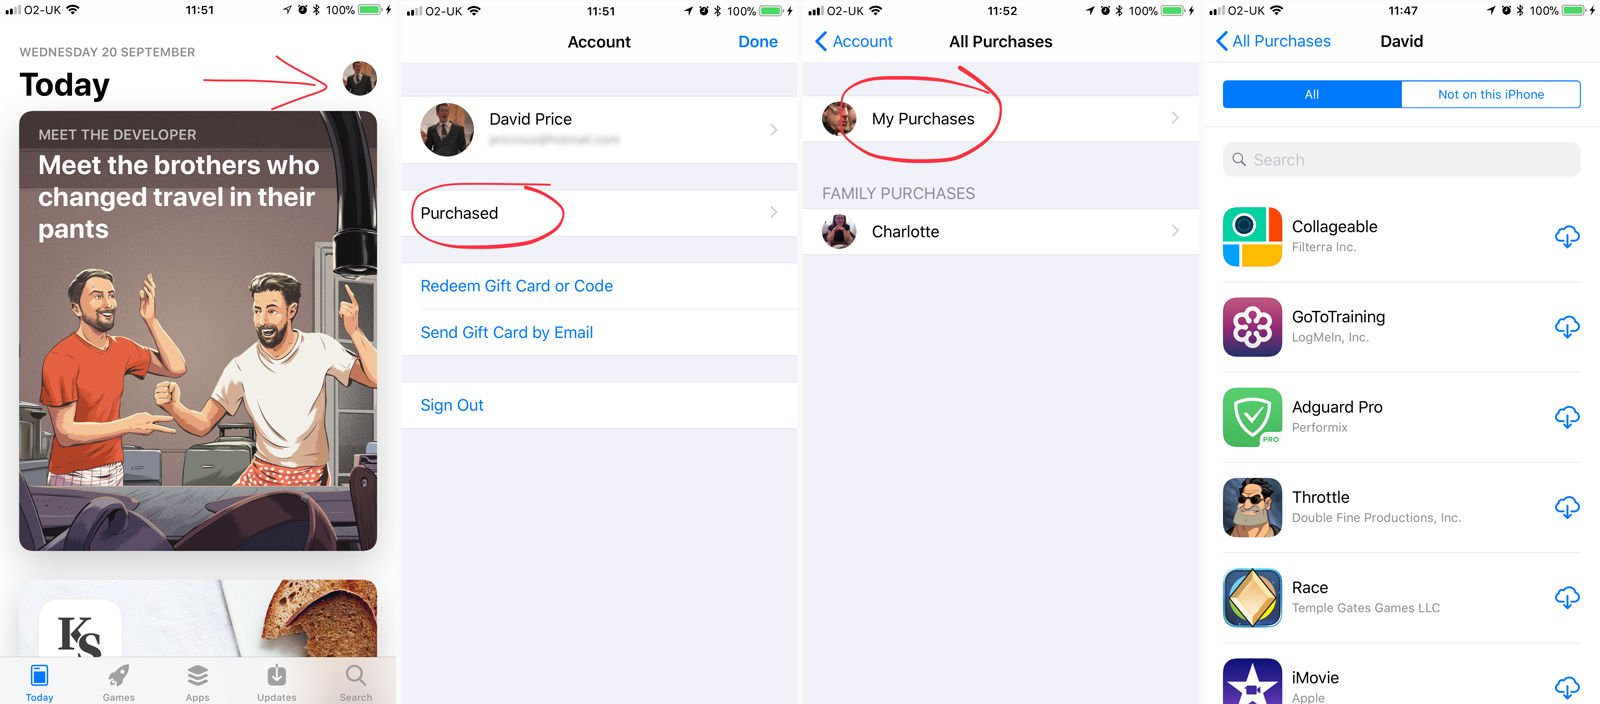 How to find the purchased page in the iOS 11 App Store